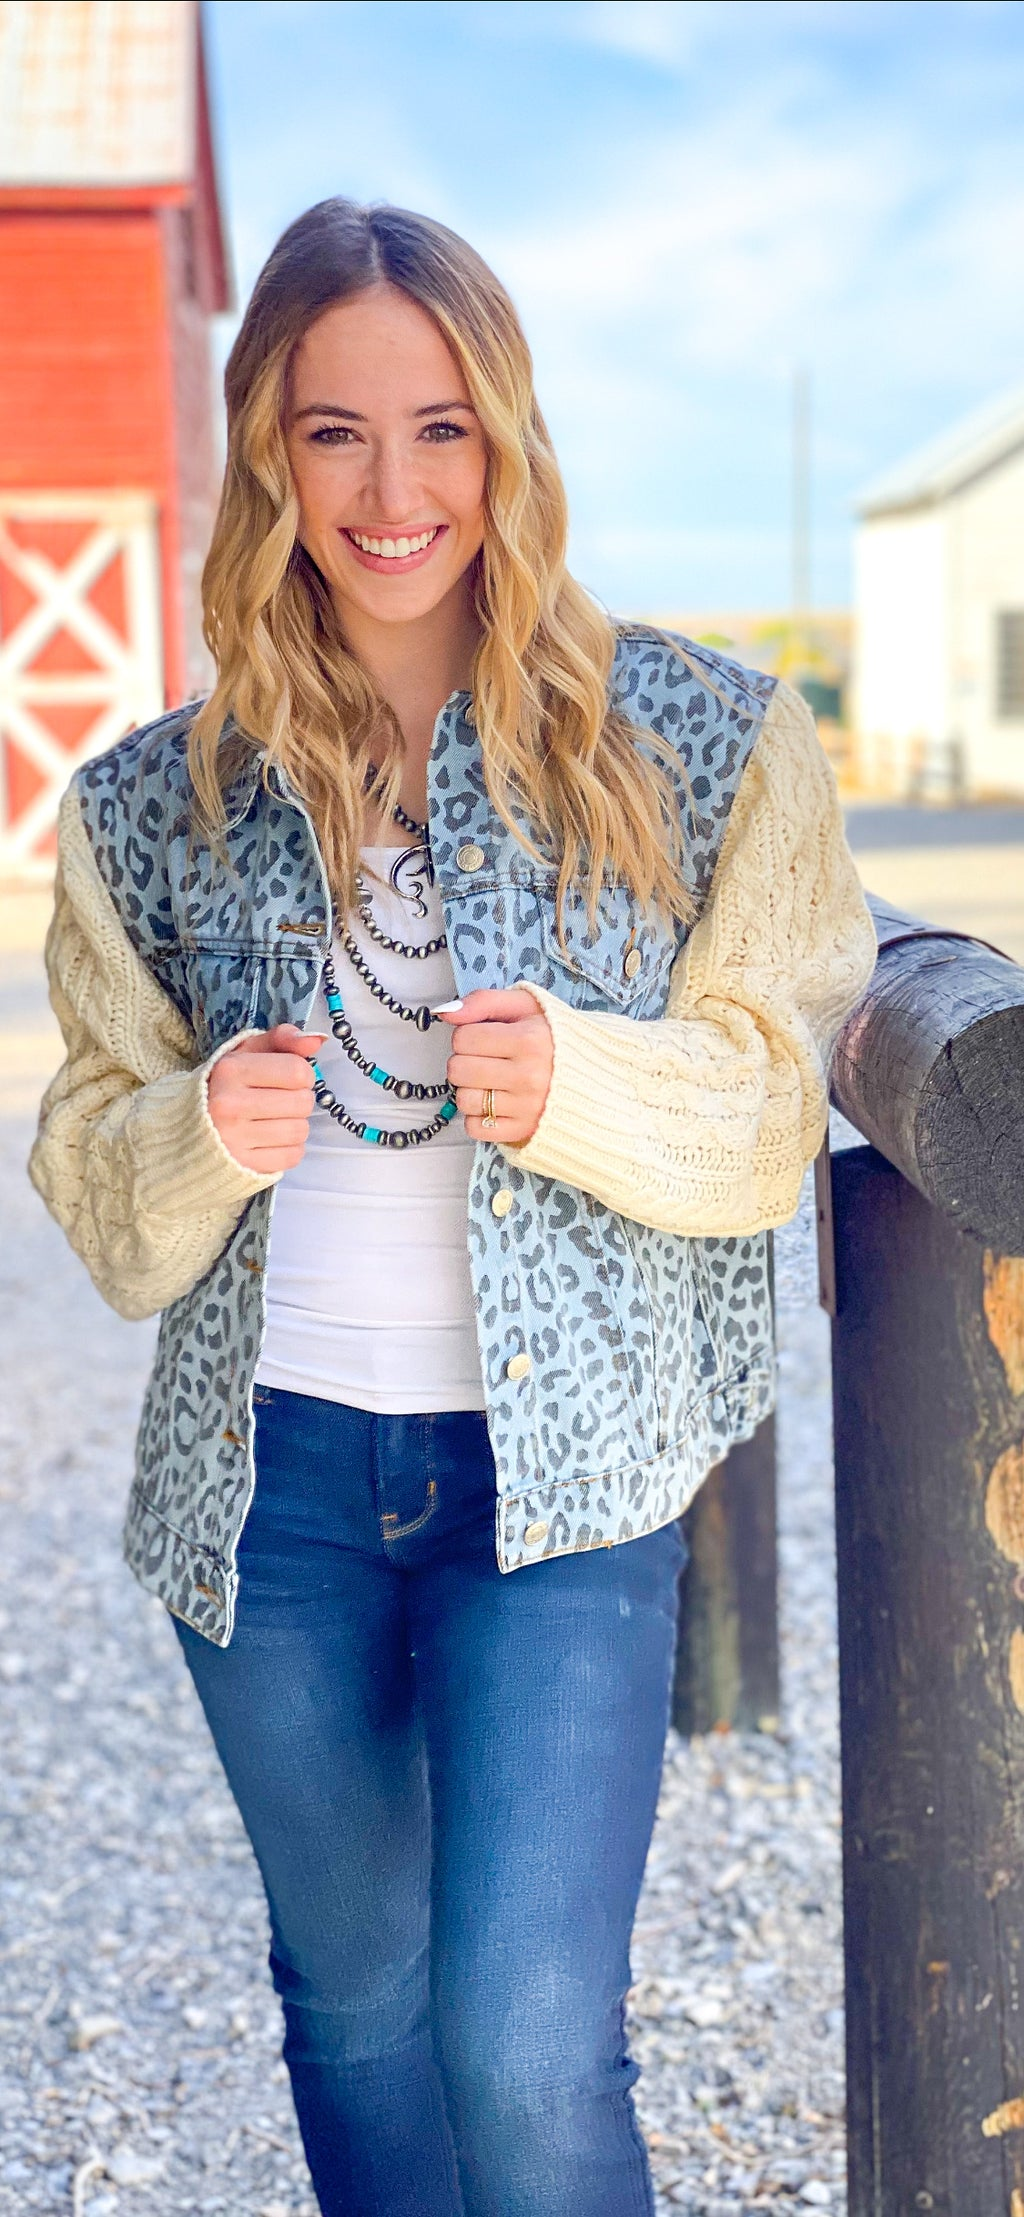 The Blue Cheetah Sweater Sleeve Denim Jacket